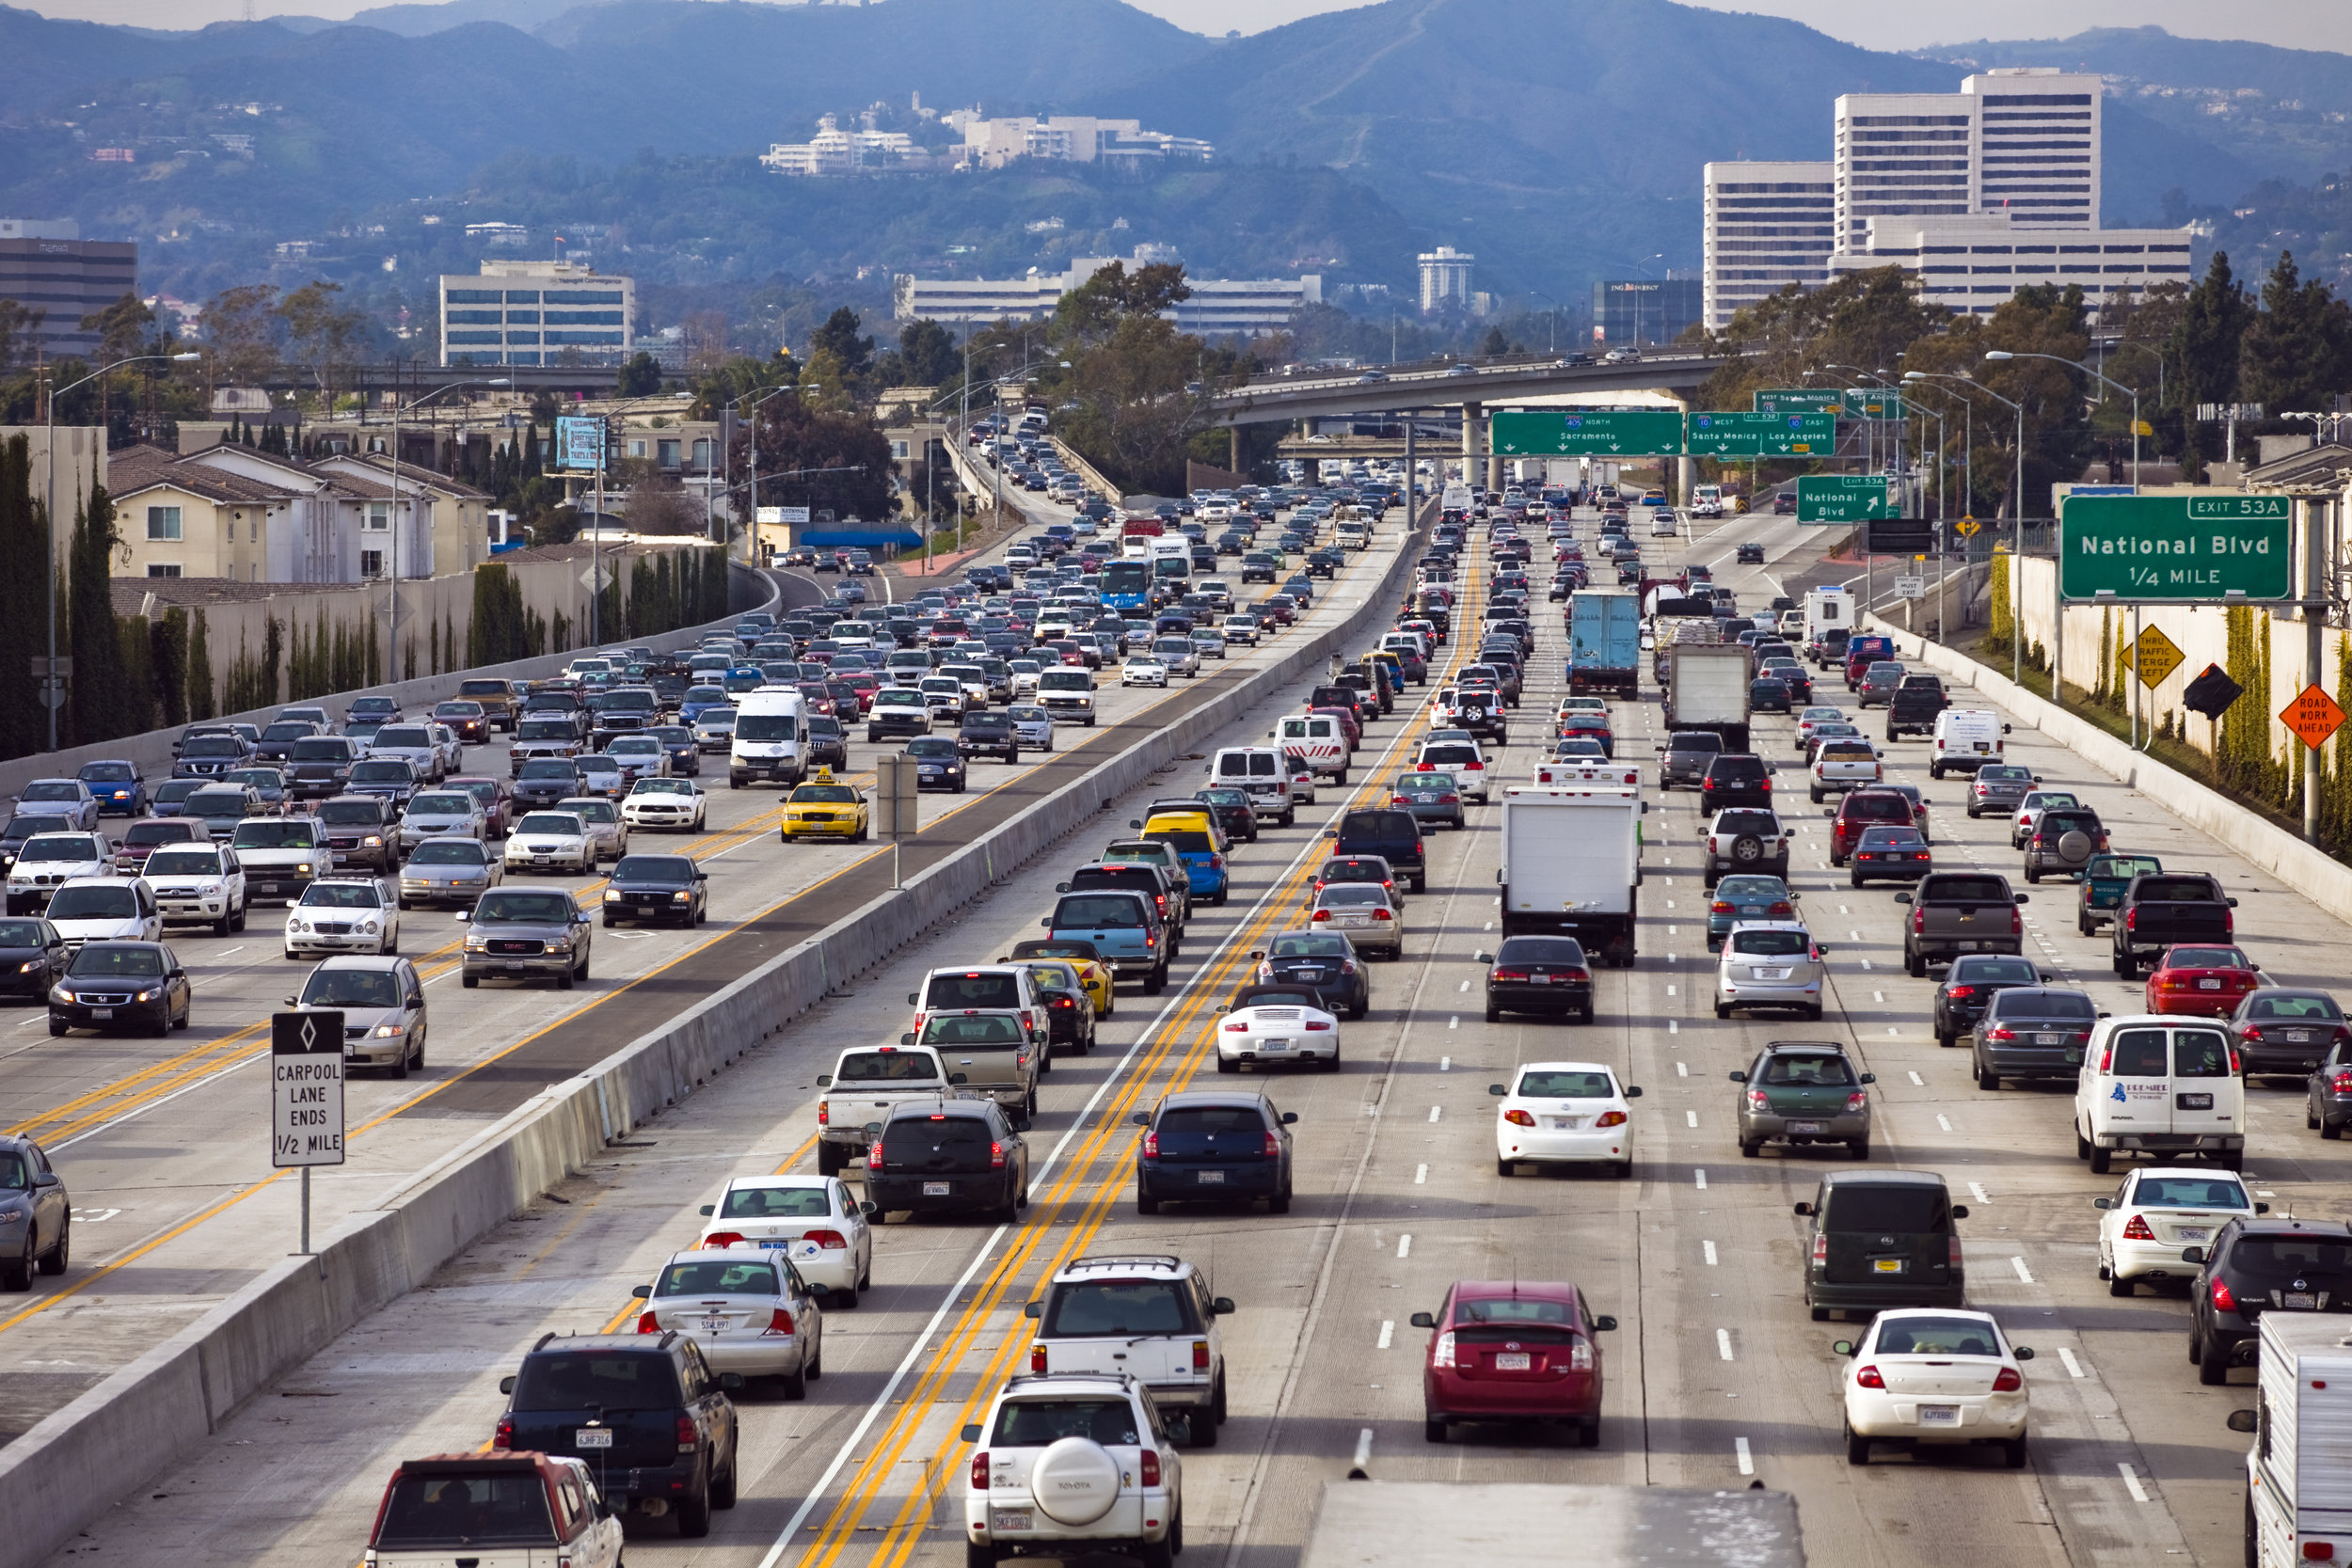 Typical traffic on the 405 in L.A., the country's busiest freeway. More than 375,000 cars per day  on average  in some stretches of this road through Los Angeles and Orange Counties.